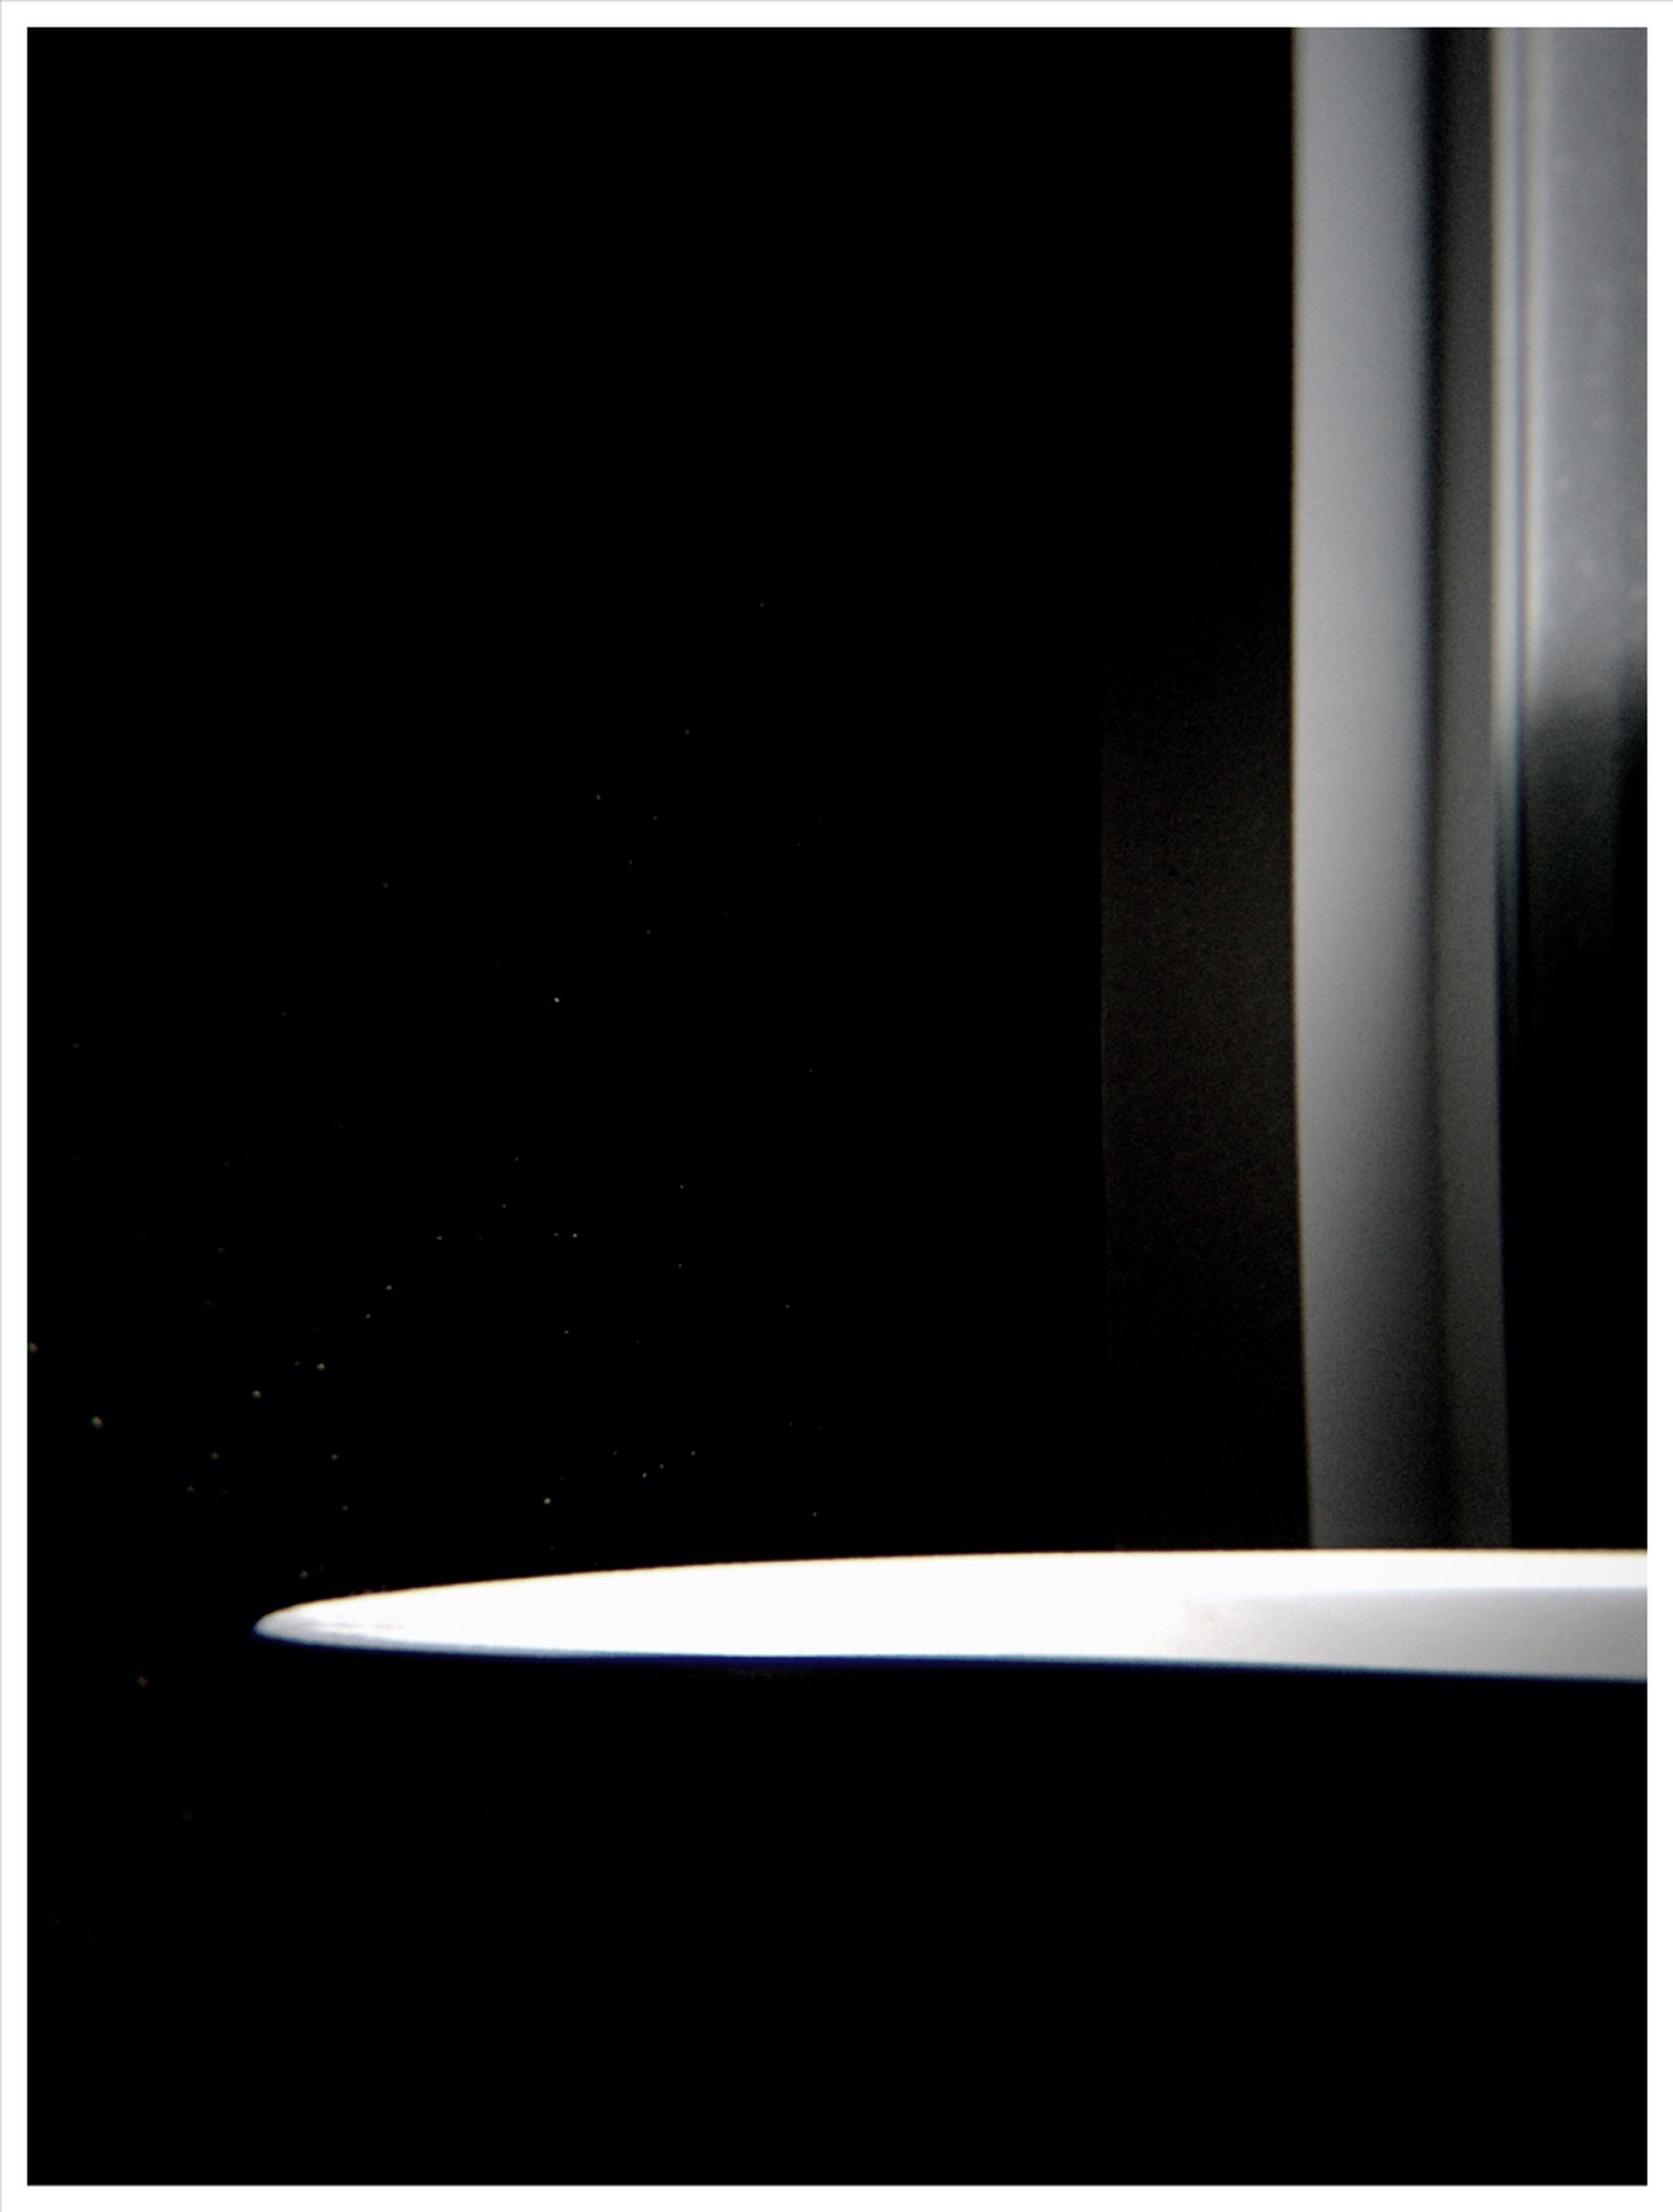 transfer print, indoors, auto post production filter, dark, copy space, black background, close-up, studio shot, window, night, no people, darkroom, illuminated, home interior, glass - material, simplicity, light - natural phenomenon, part of, abstract, single object